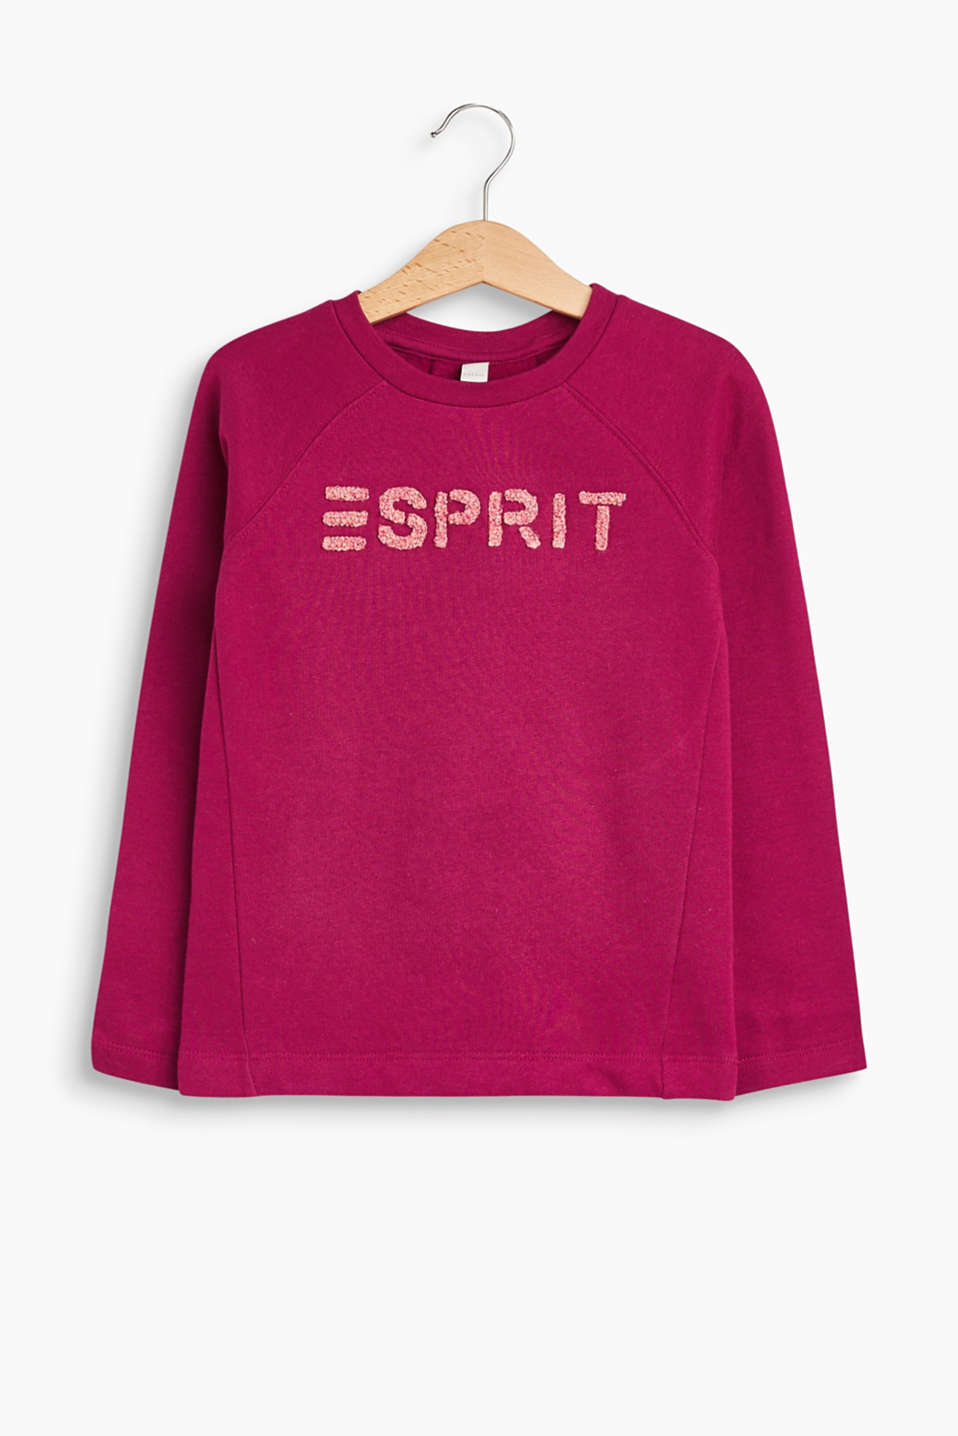 A fluffy towelling logo and pleated back give this sweatshirt its adorable look.